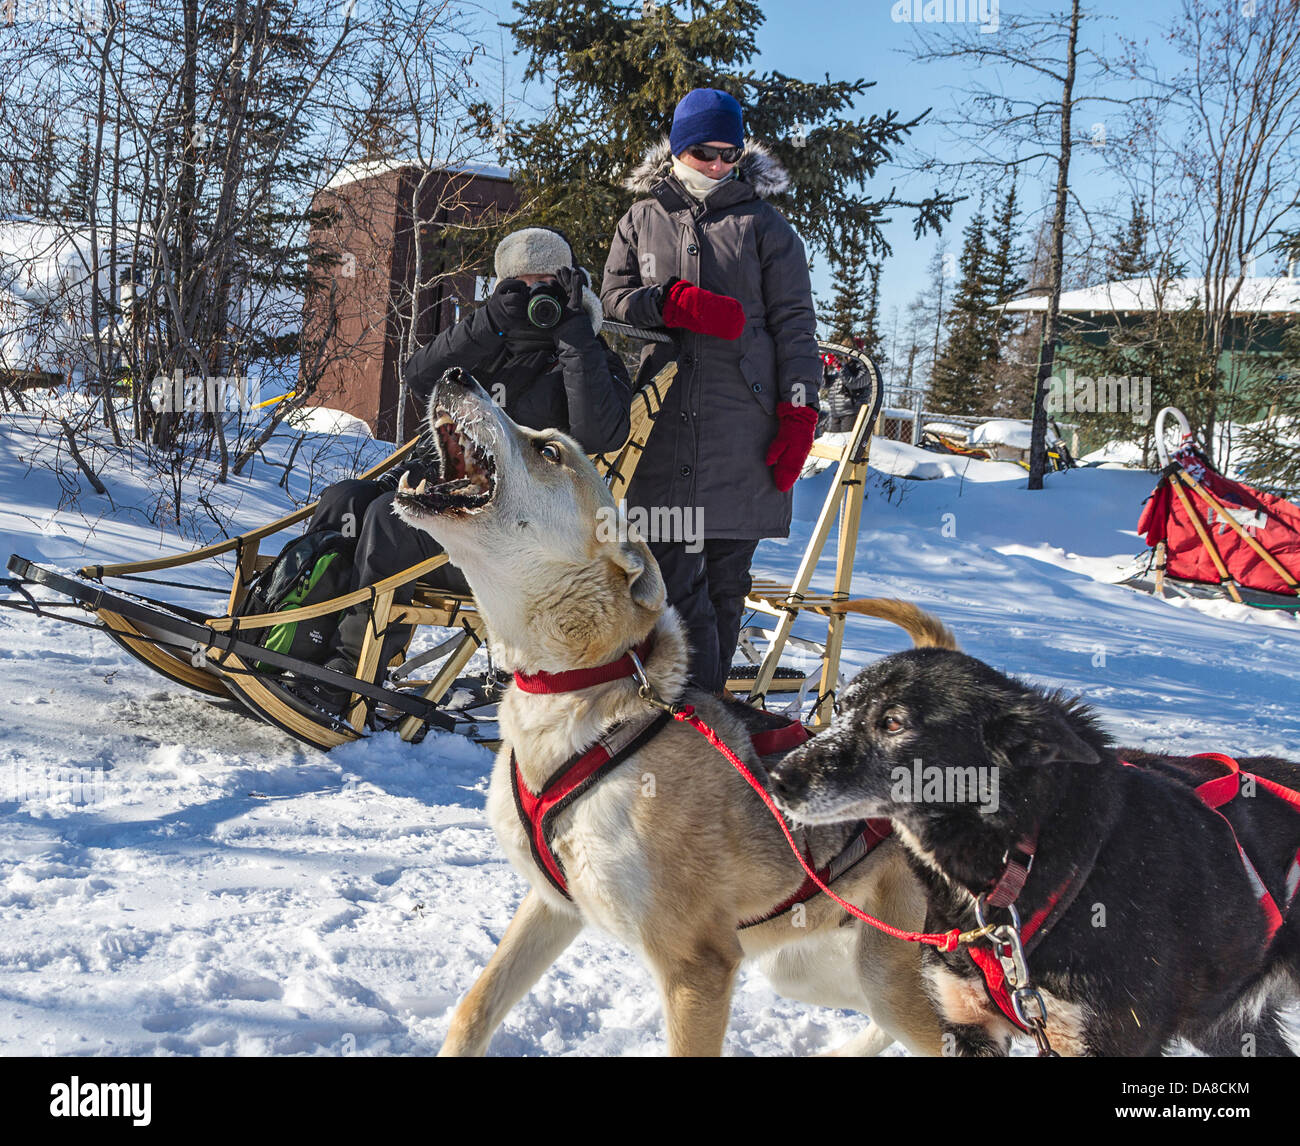 A team of dogs howls in anticipation of a good run at Wapusk Adventures dog sledding operation. - Stock Image